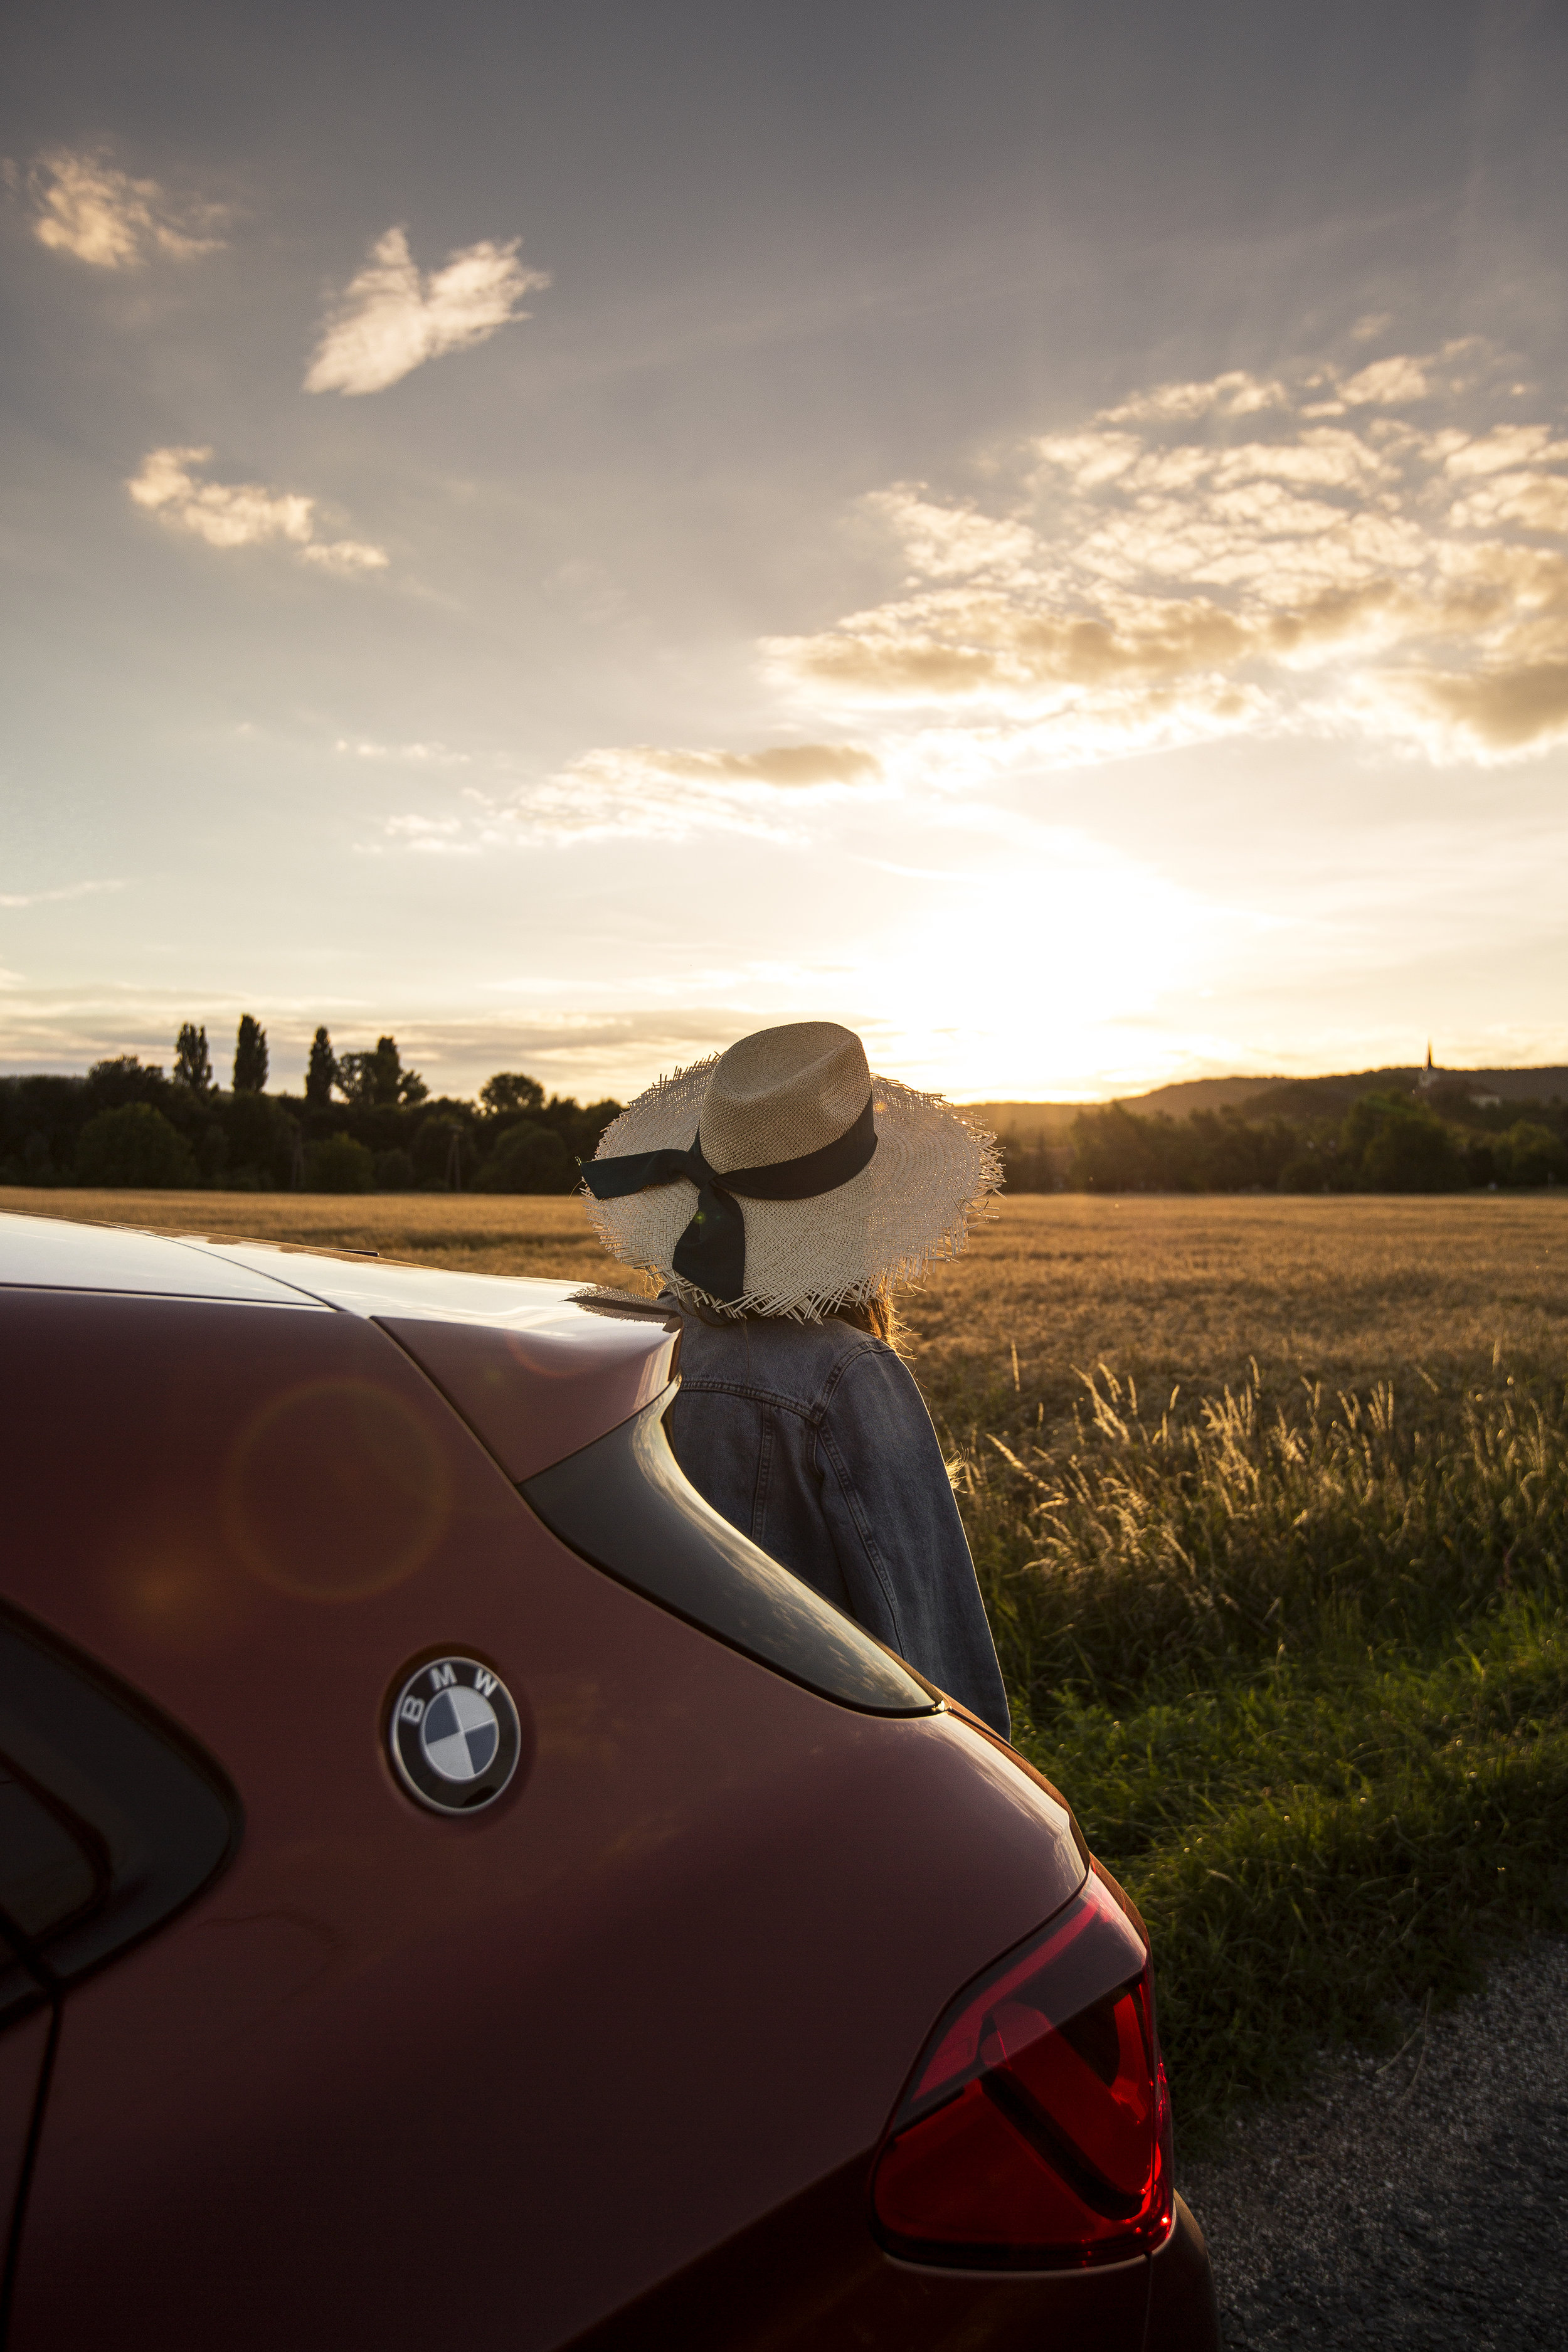 On The Road With BMW, X2, Balaton Uplands